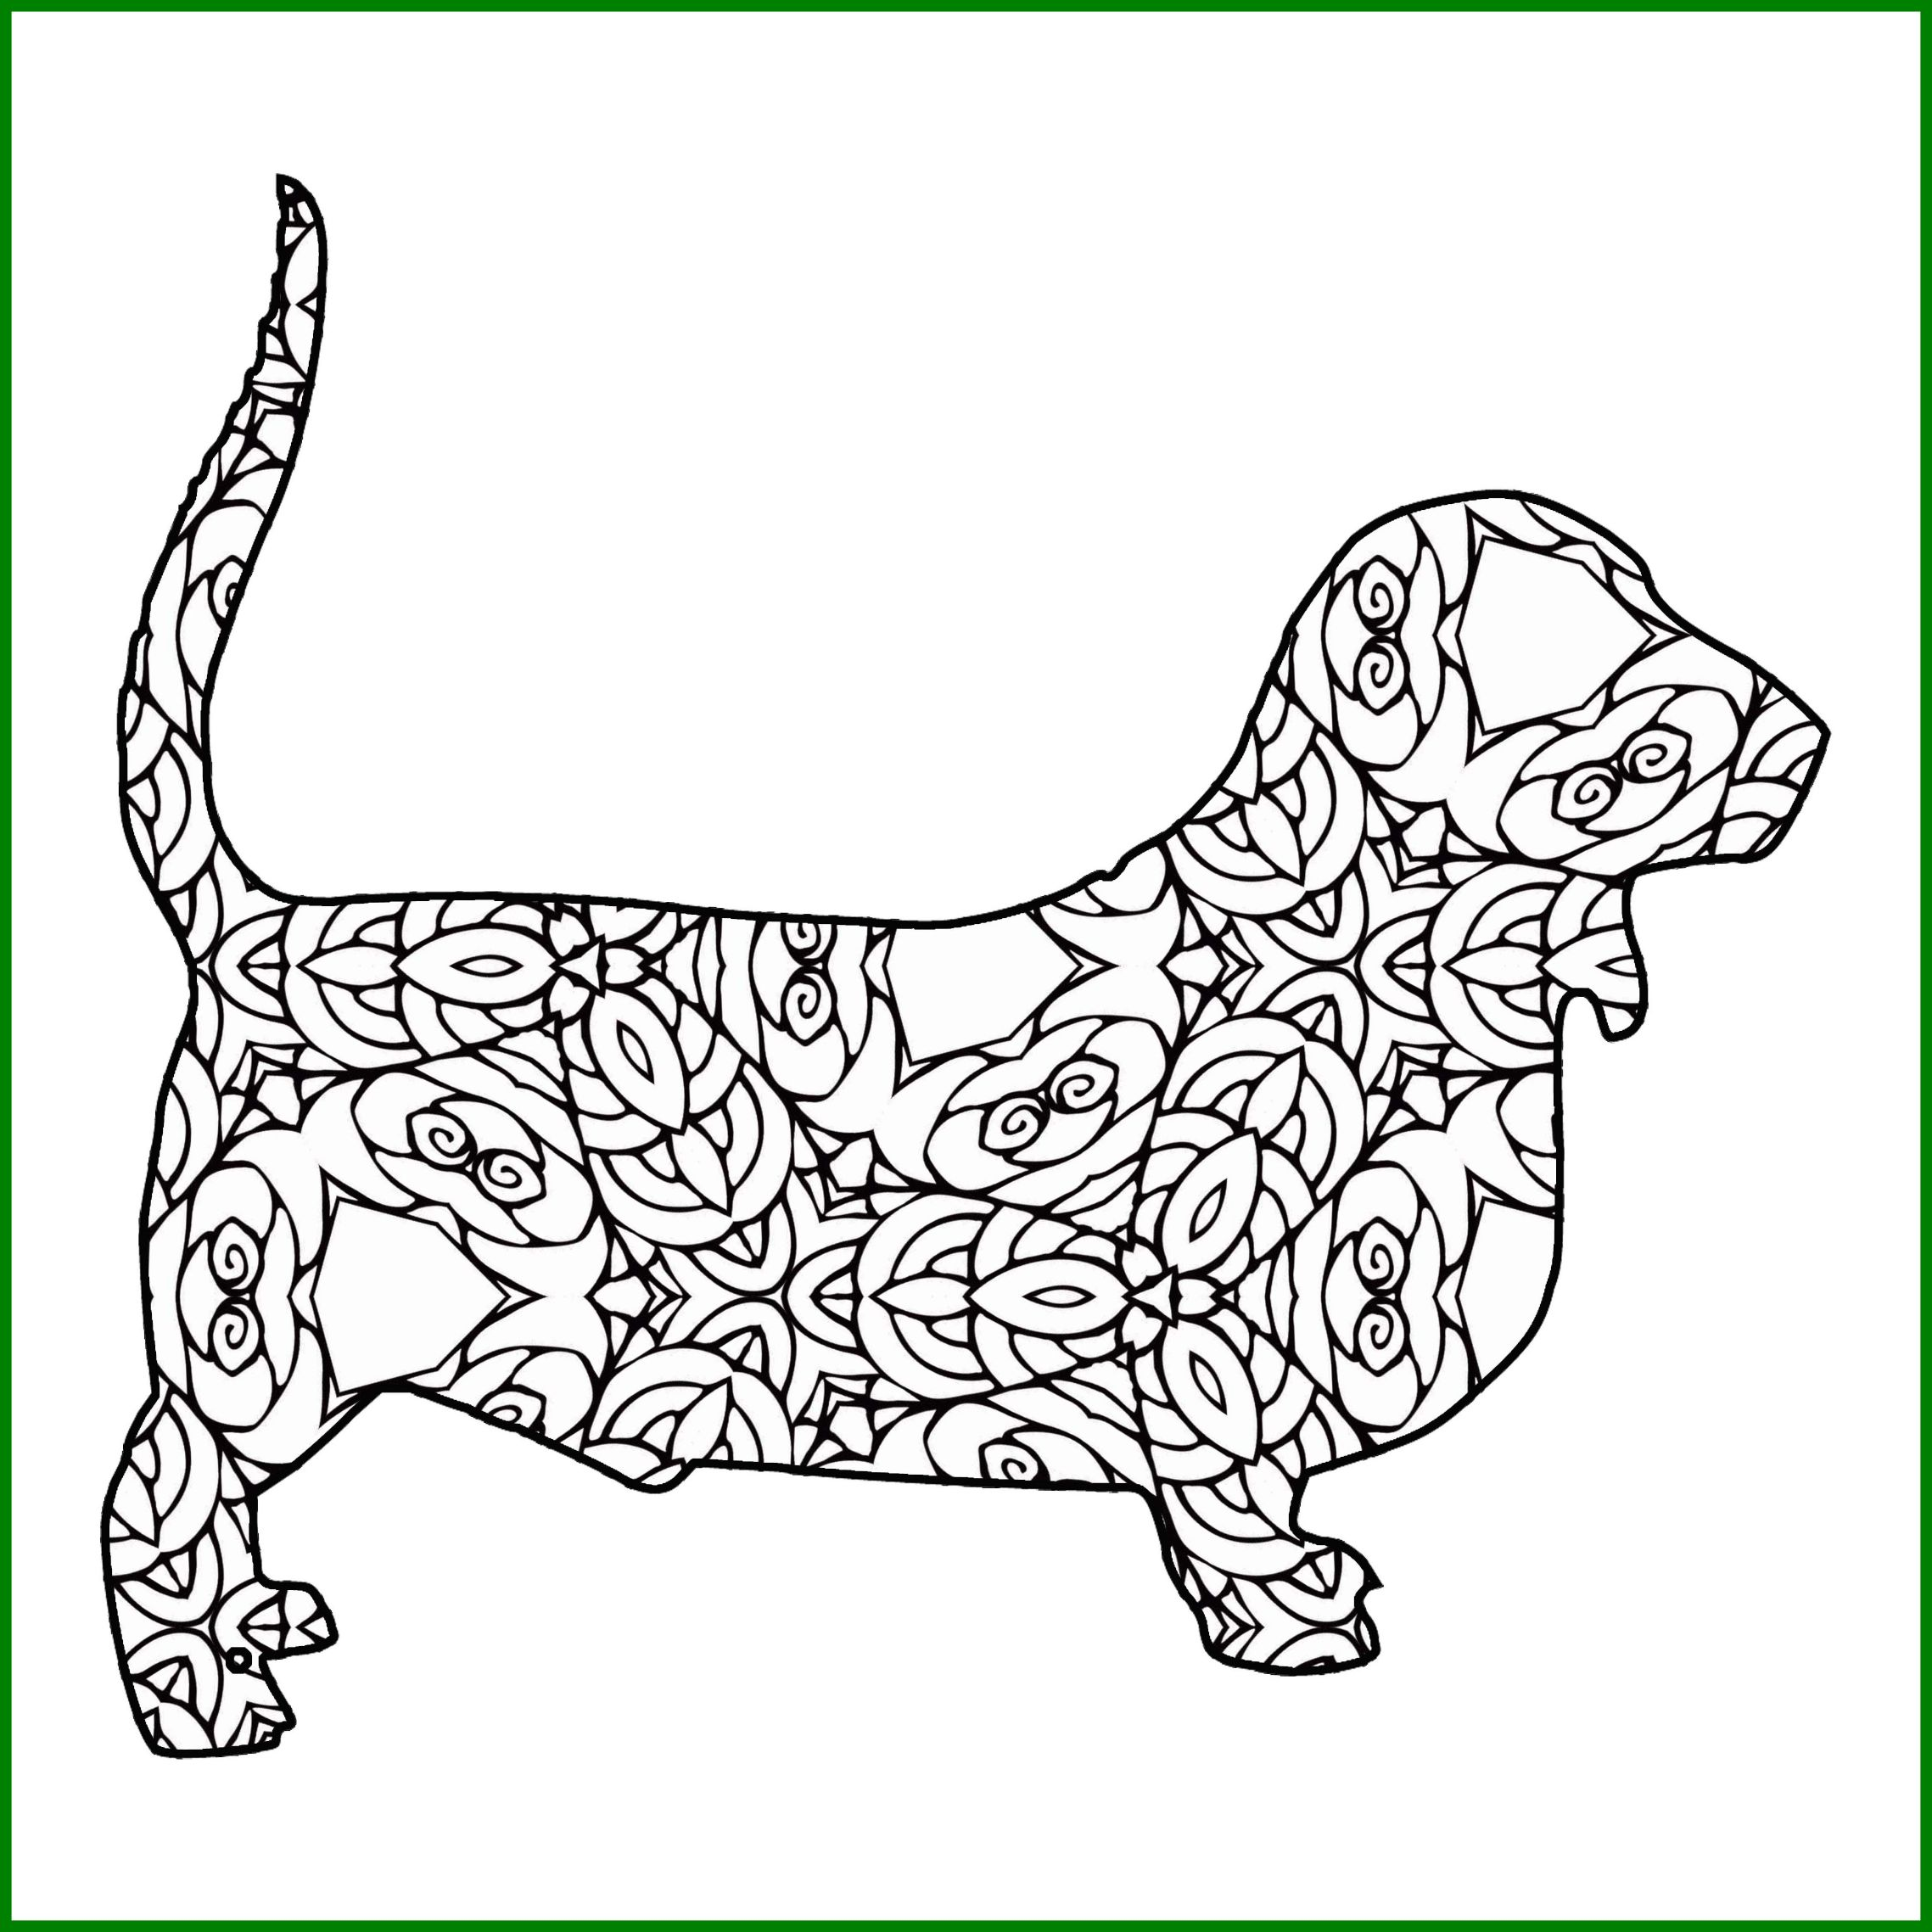 2277x2277 Stunning Best Of Coloring Pages Hound Dogs Leri Co Bloodhound